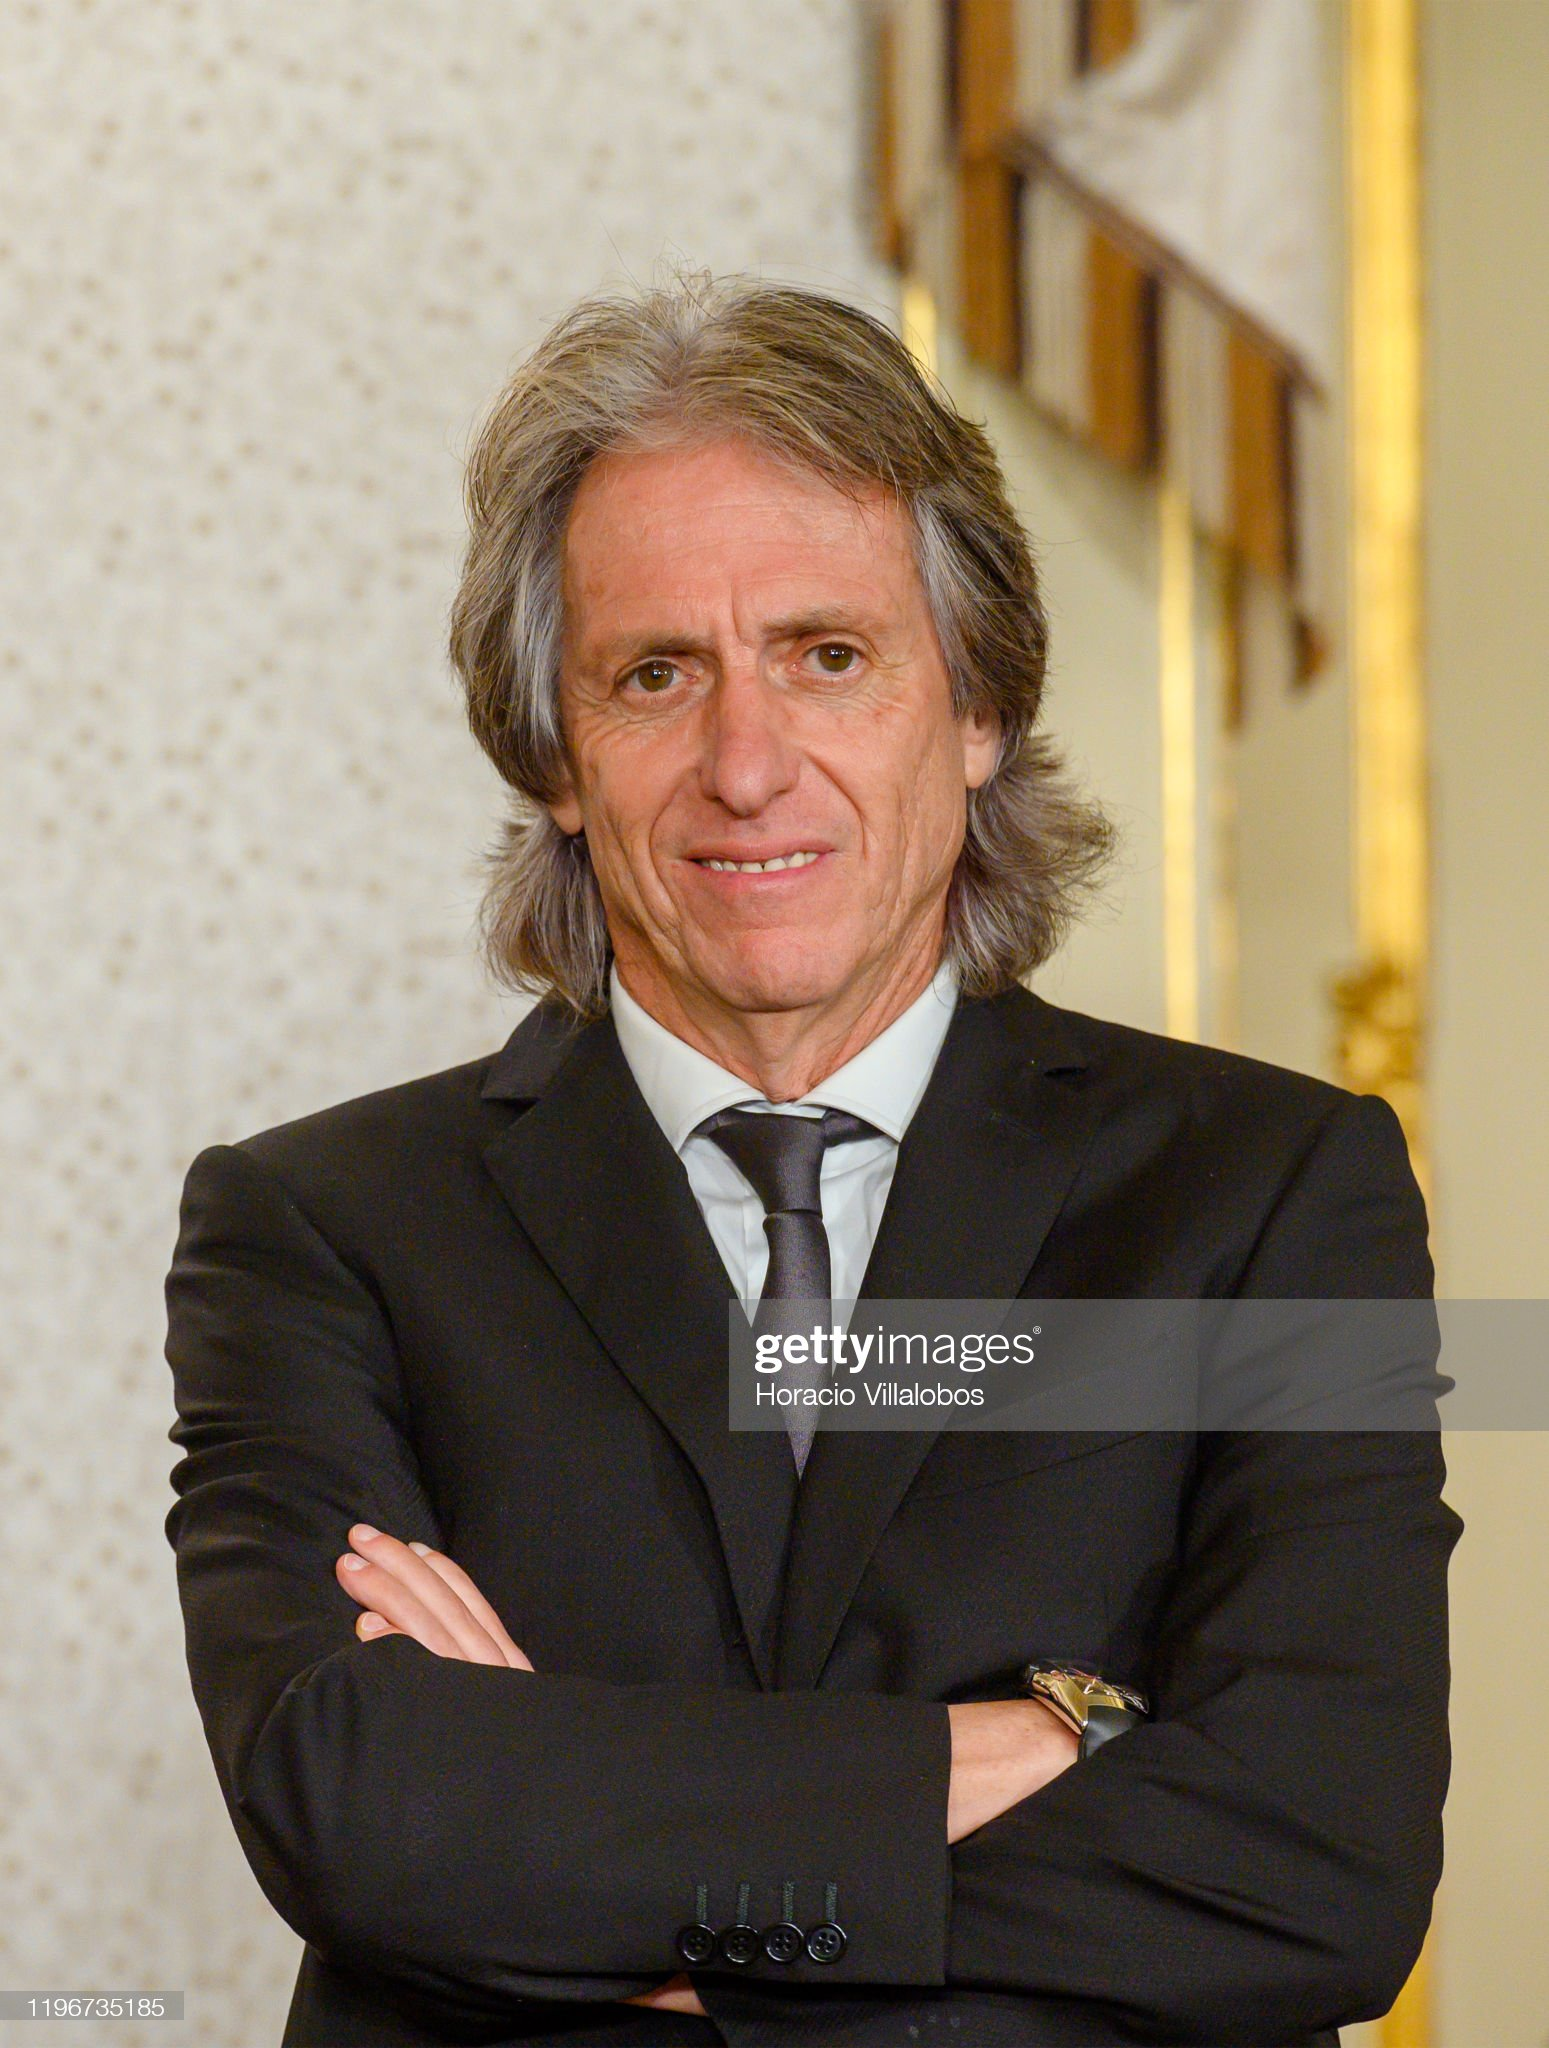 https://media.gettyimages.com/photos/jorge-jesus-head-coach-of-brazilian-soccer-team-cr-flamengo-waits-to-picture-id1196735185?s=2048x2048